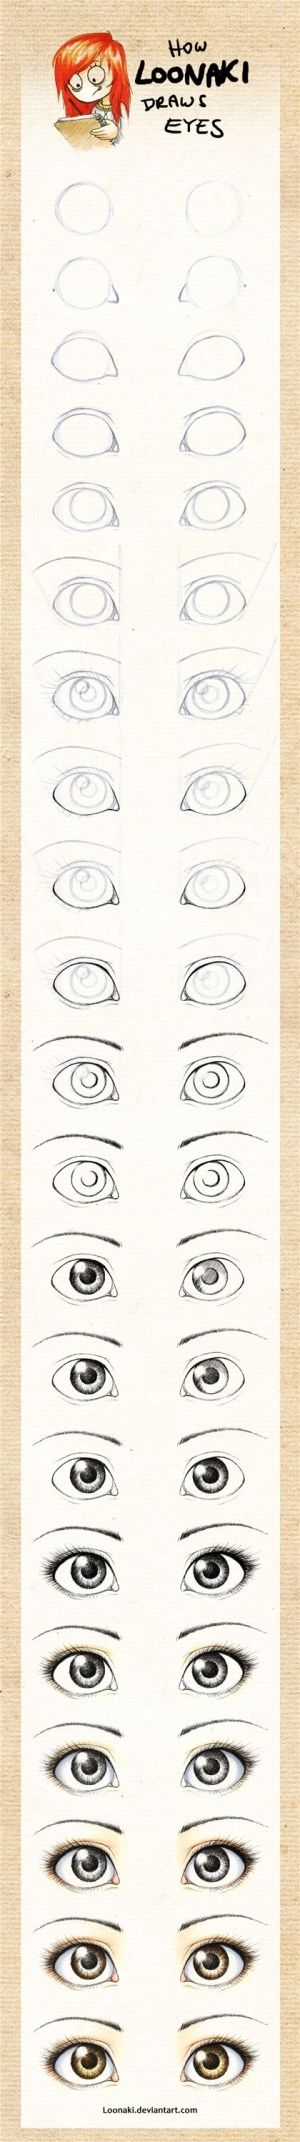 How to draw eyes...                                                                                                                                                      Mais